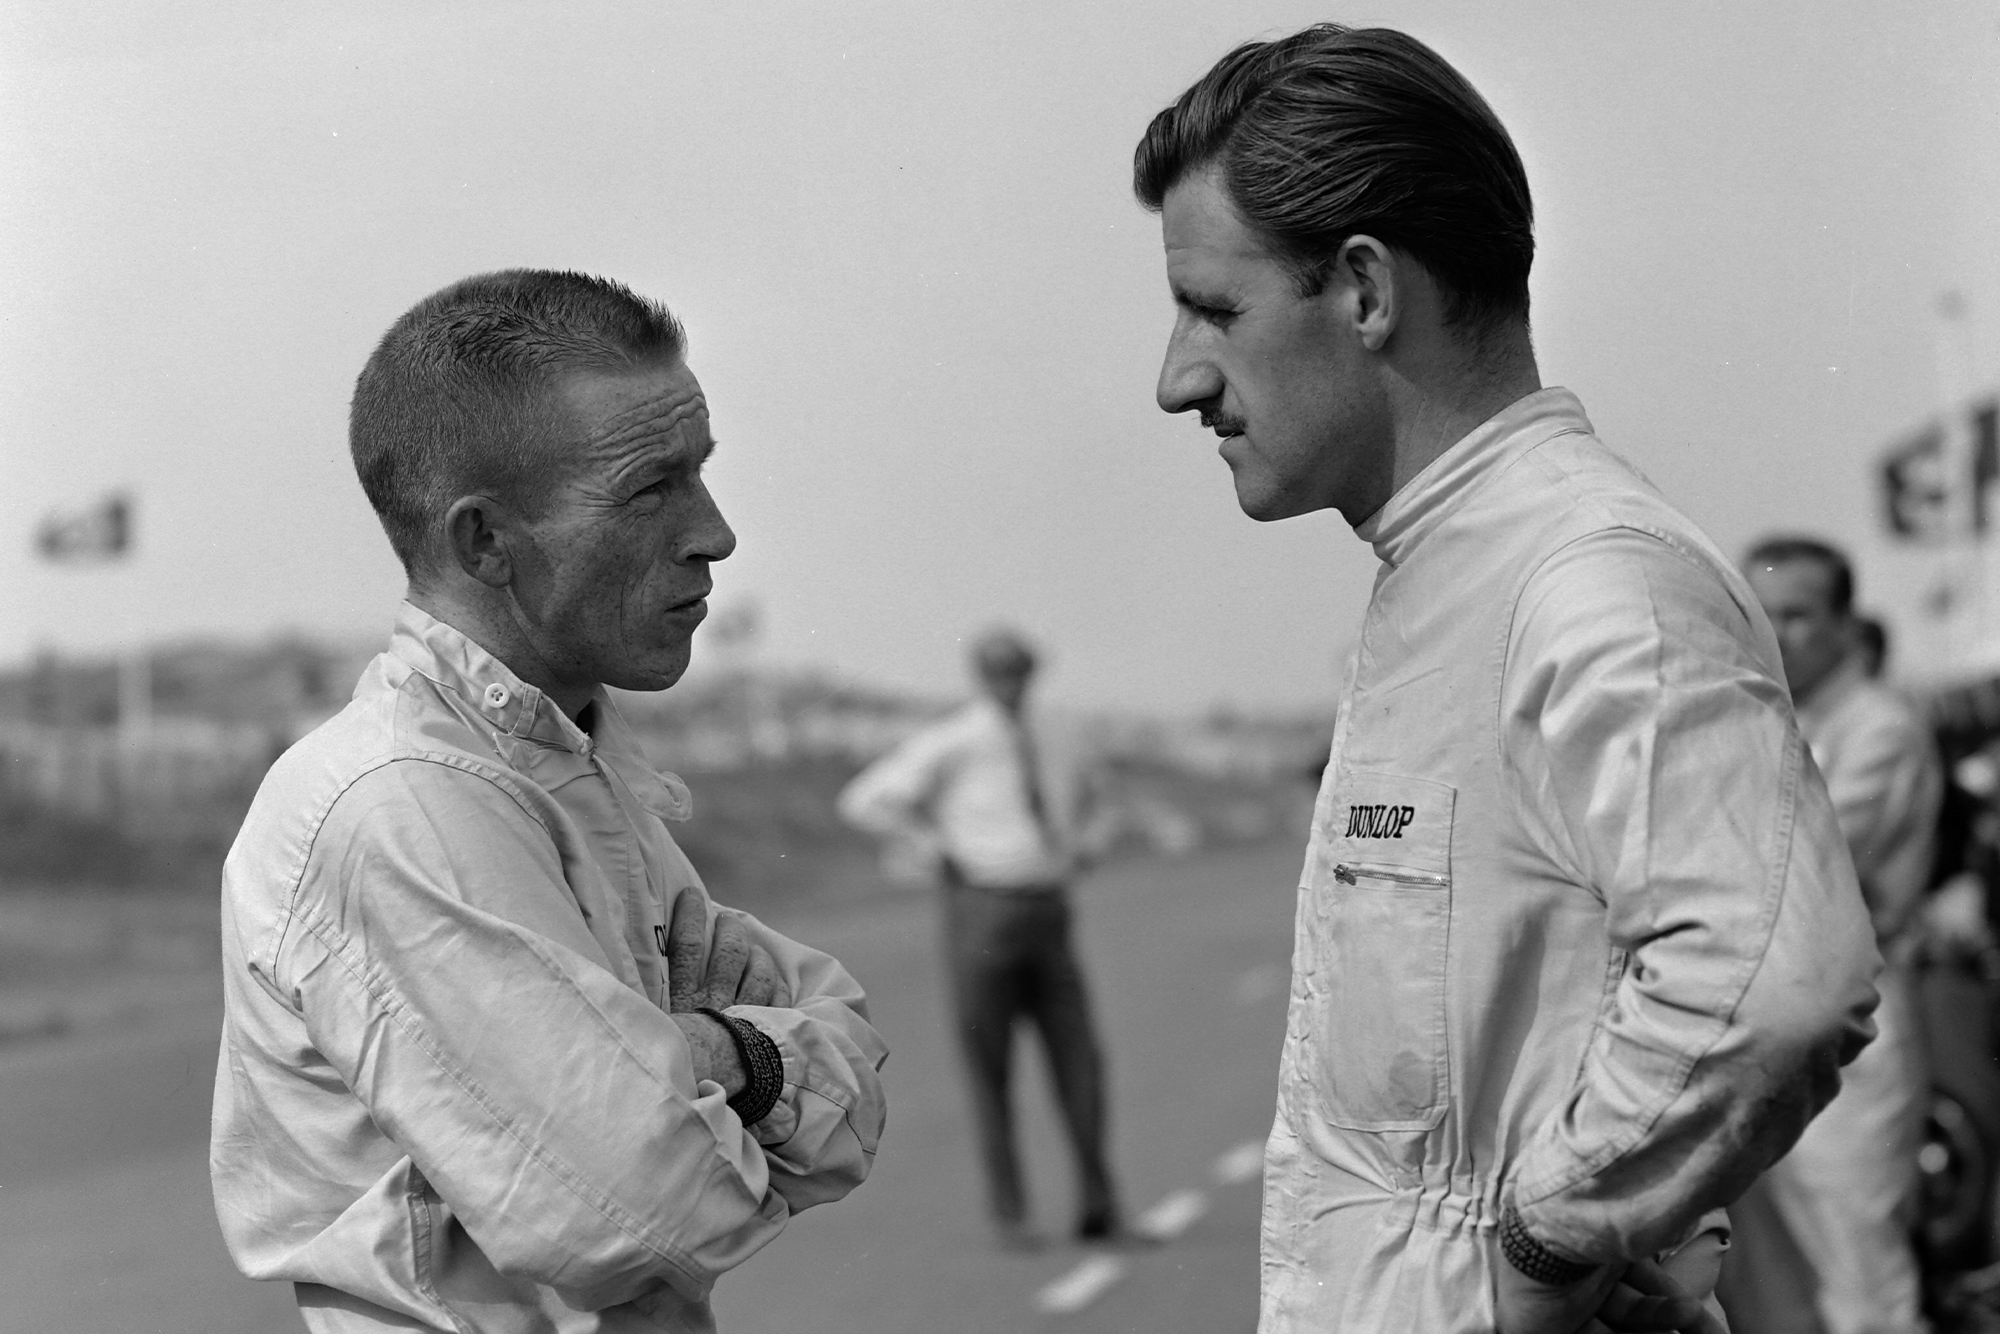 BRM team-mates Ginther and Hill confer.